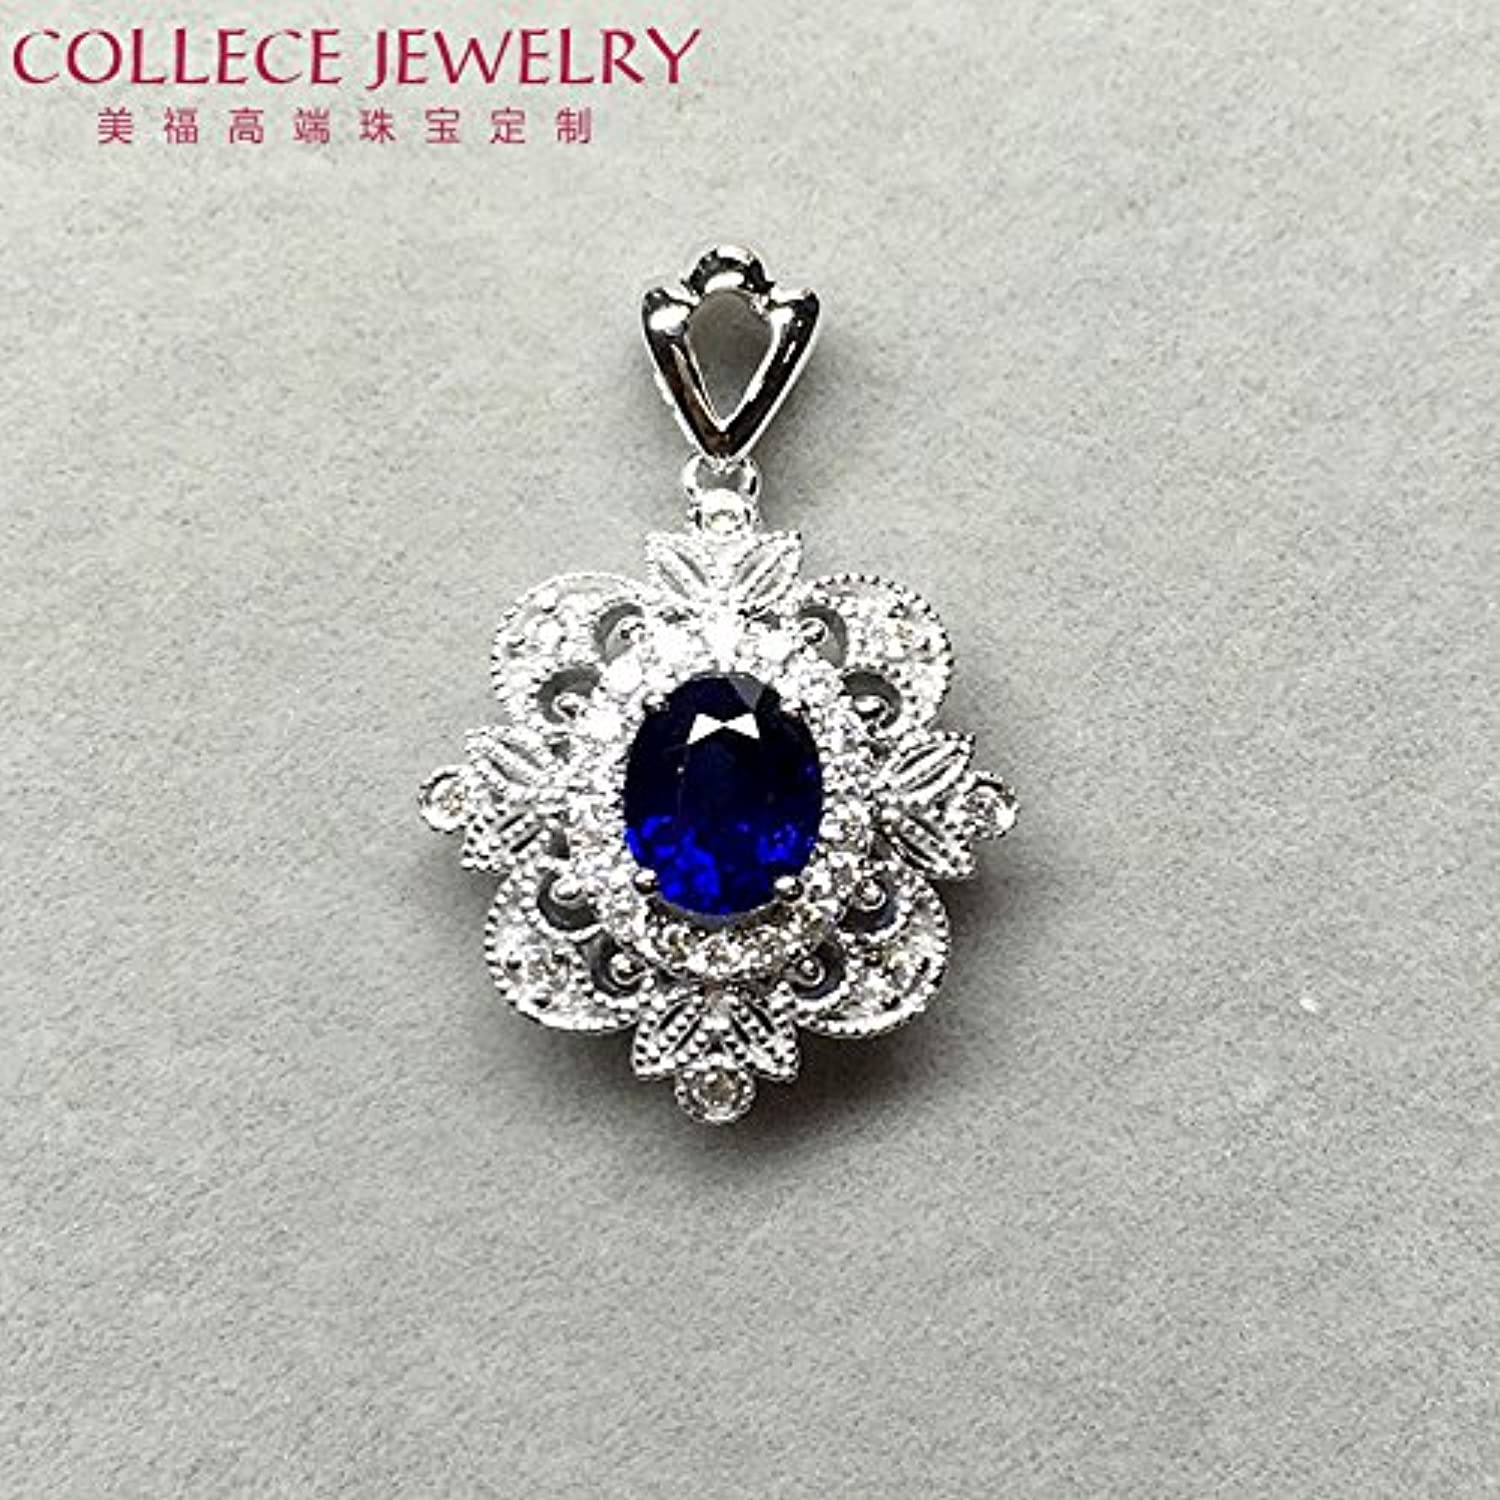 US-fu Jewelry 18k White gold Diamond Necklace Pendant Set with Sapphires Inlaid Jewelry Processing